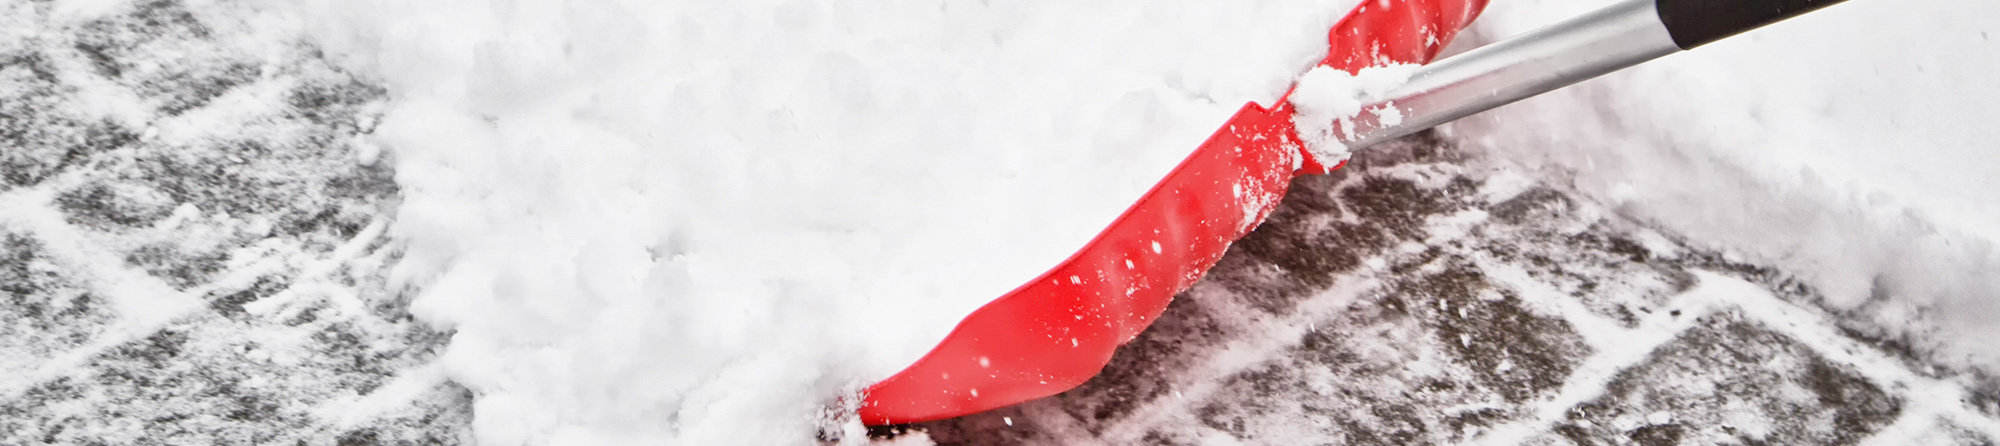 snow shoveling with red shovel on sidewalk